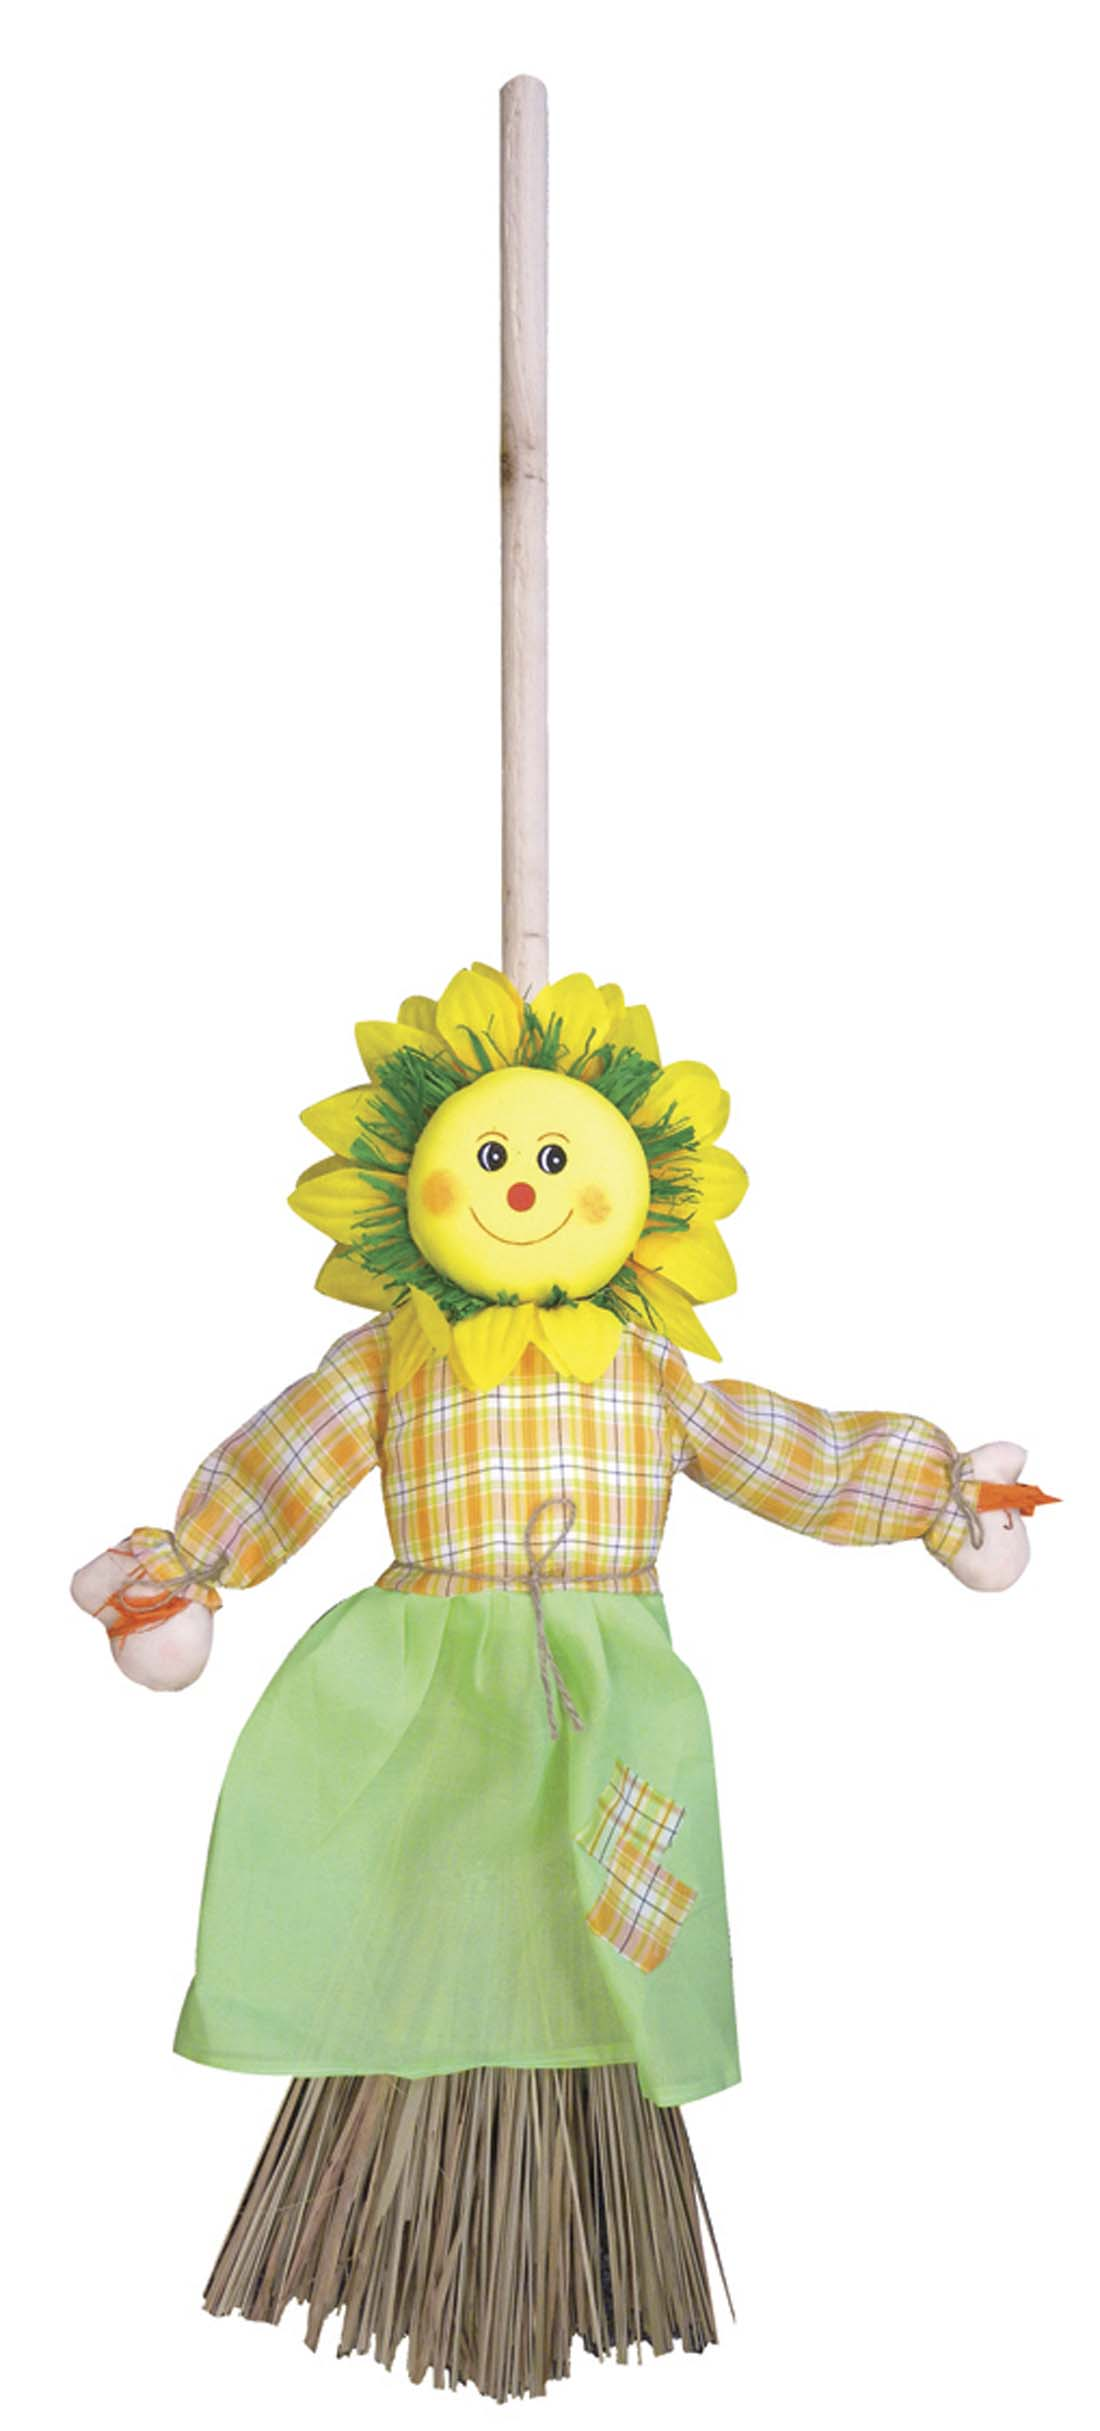 View LAND & SEA DECORATIVE BROOM 36 INCH SUNFLOWER